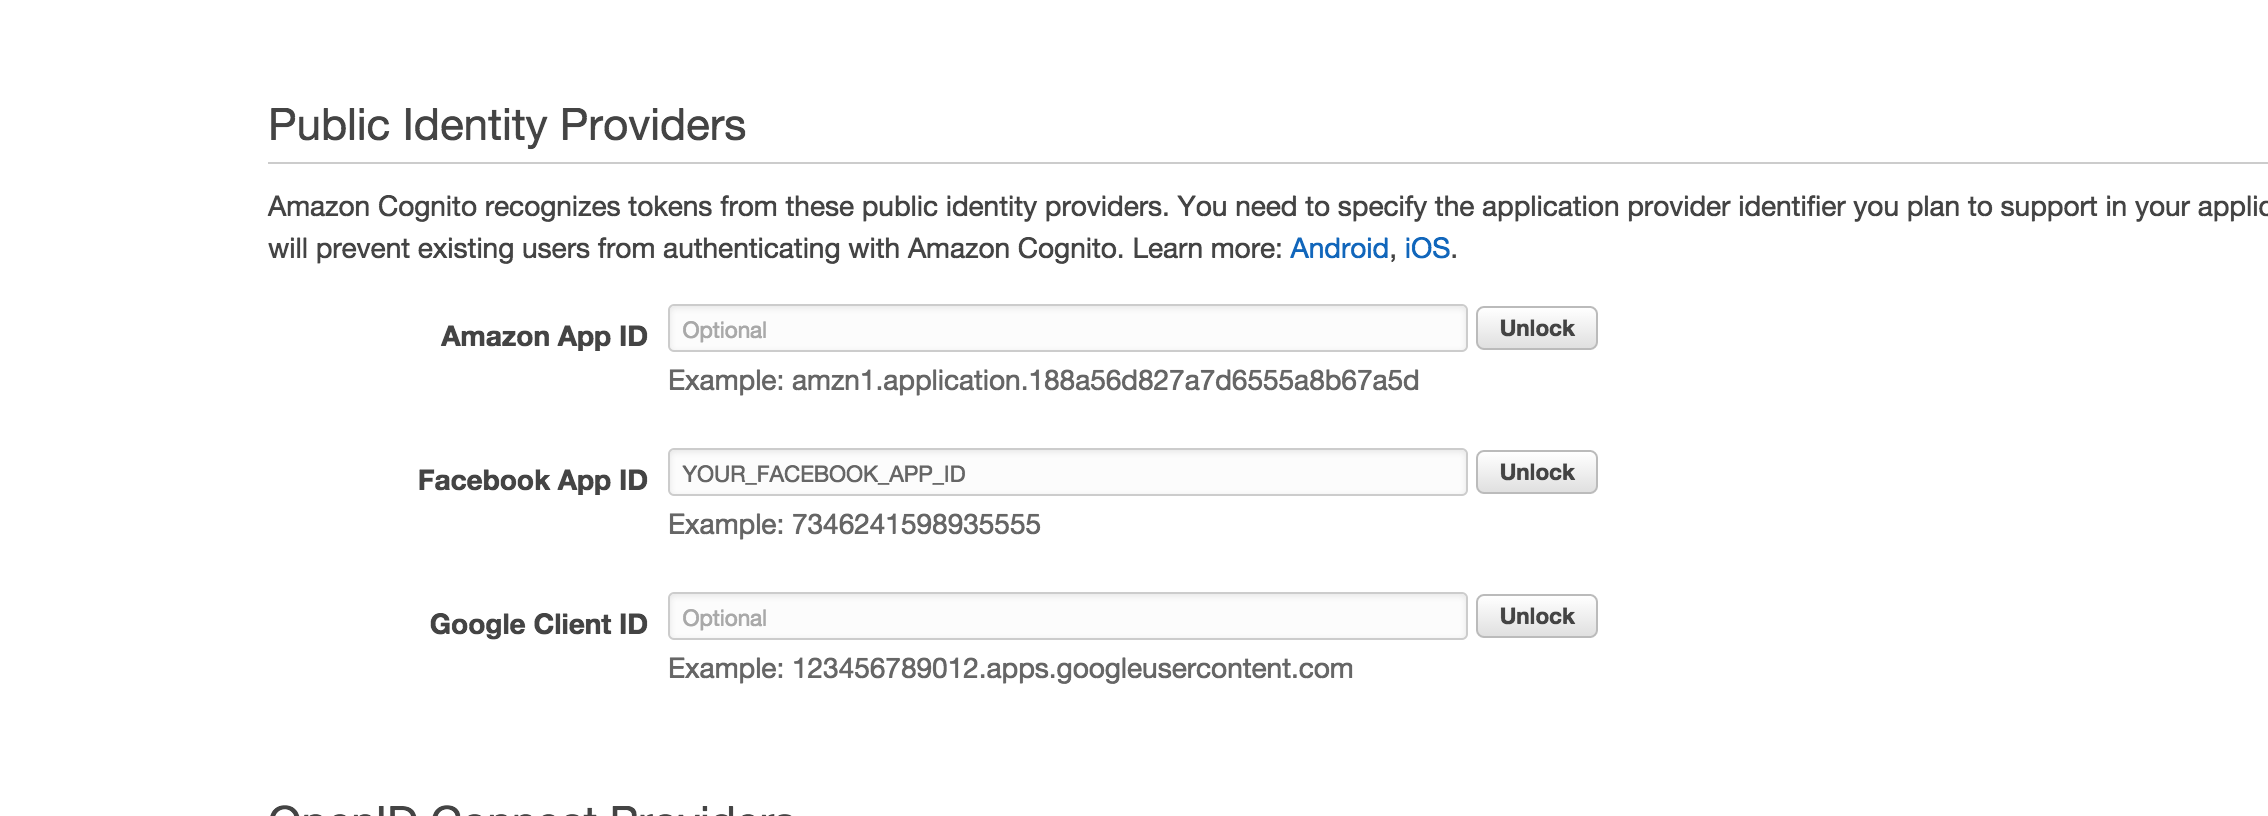 Grzegorz Tatarzyn - Amazon Cognito: Facebook Authentication